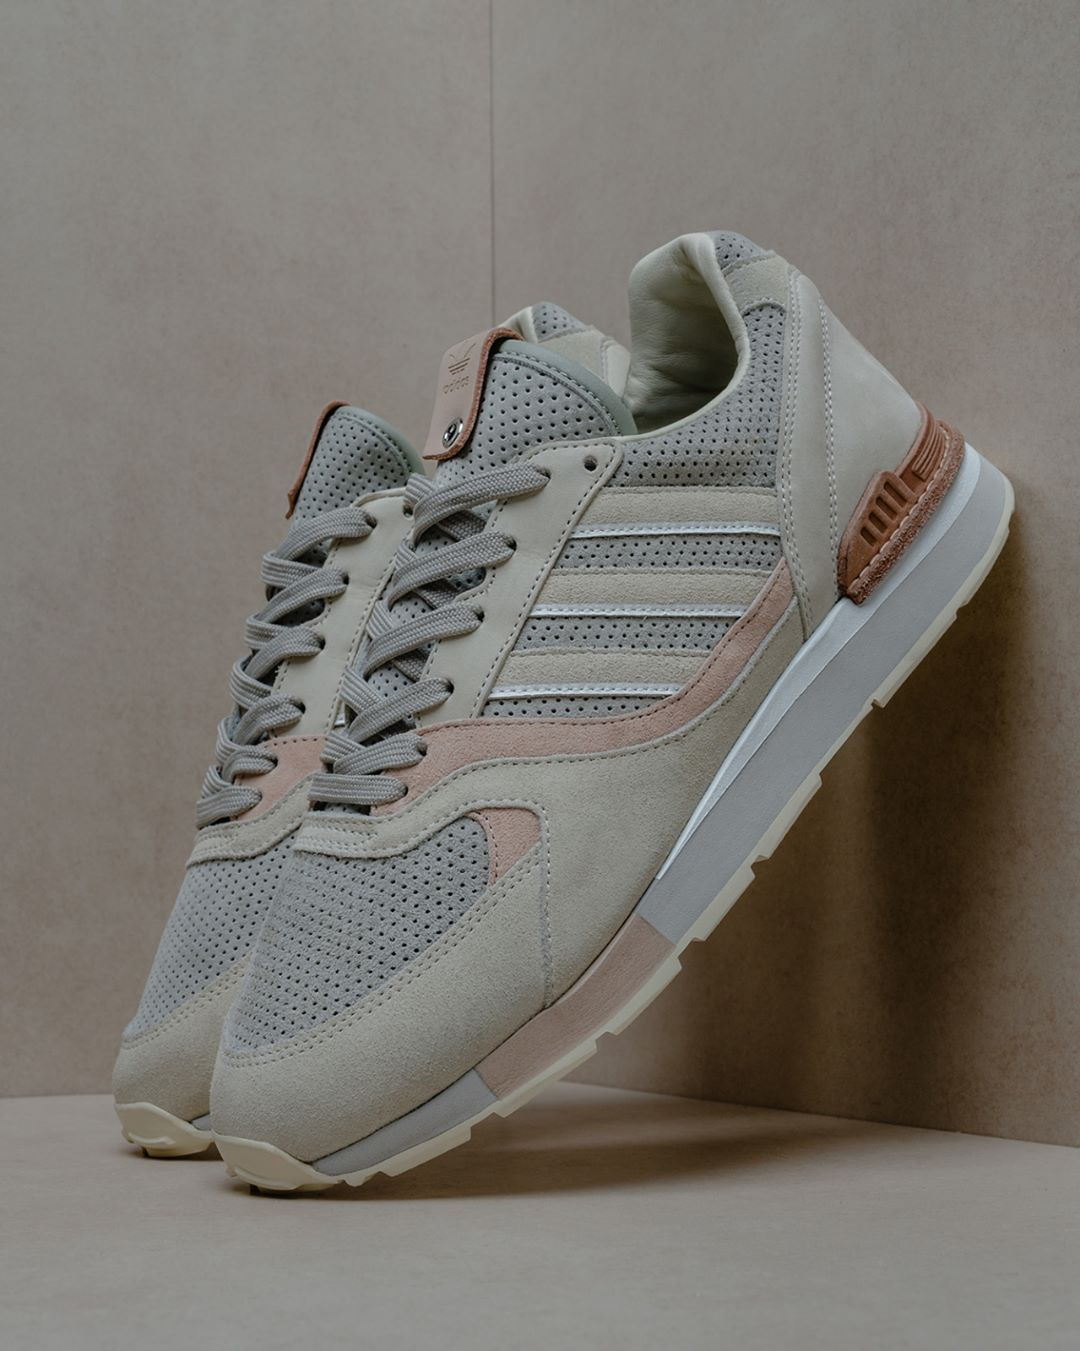 8d3d8784e We are proud to announce our forthcoming cooperation with adidas Consortium releasing  exclusively at solebox on May 5th. The »Italian…